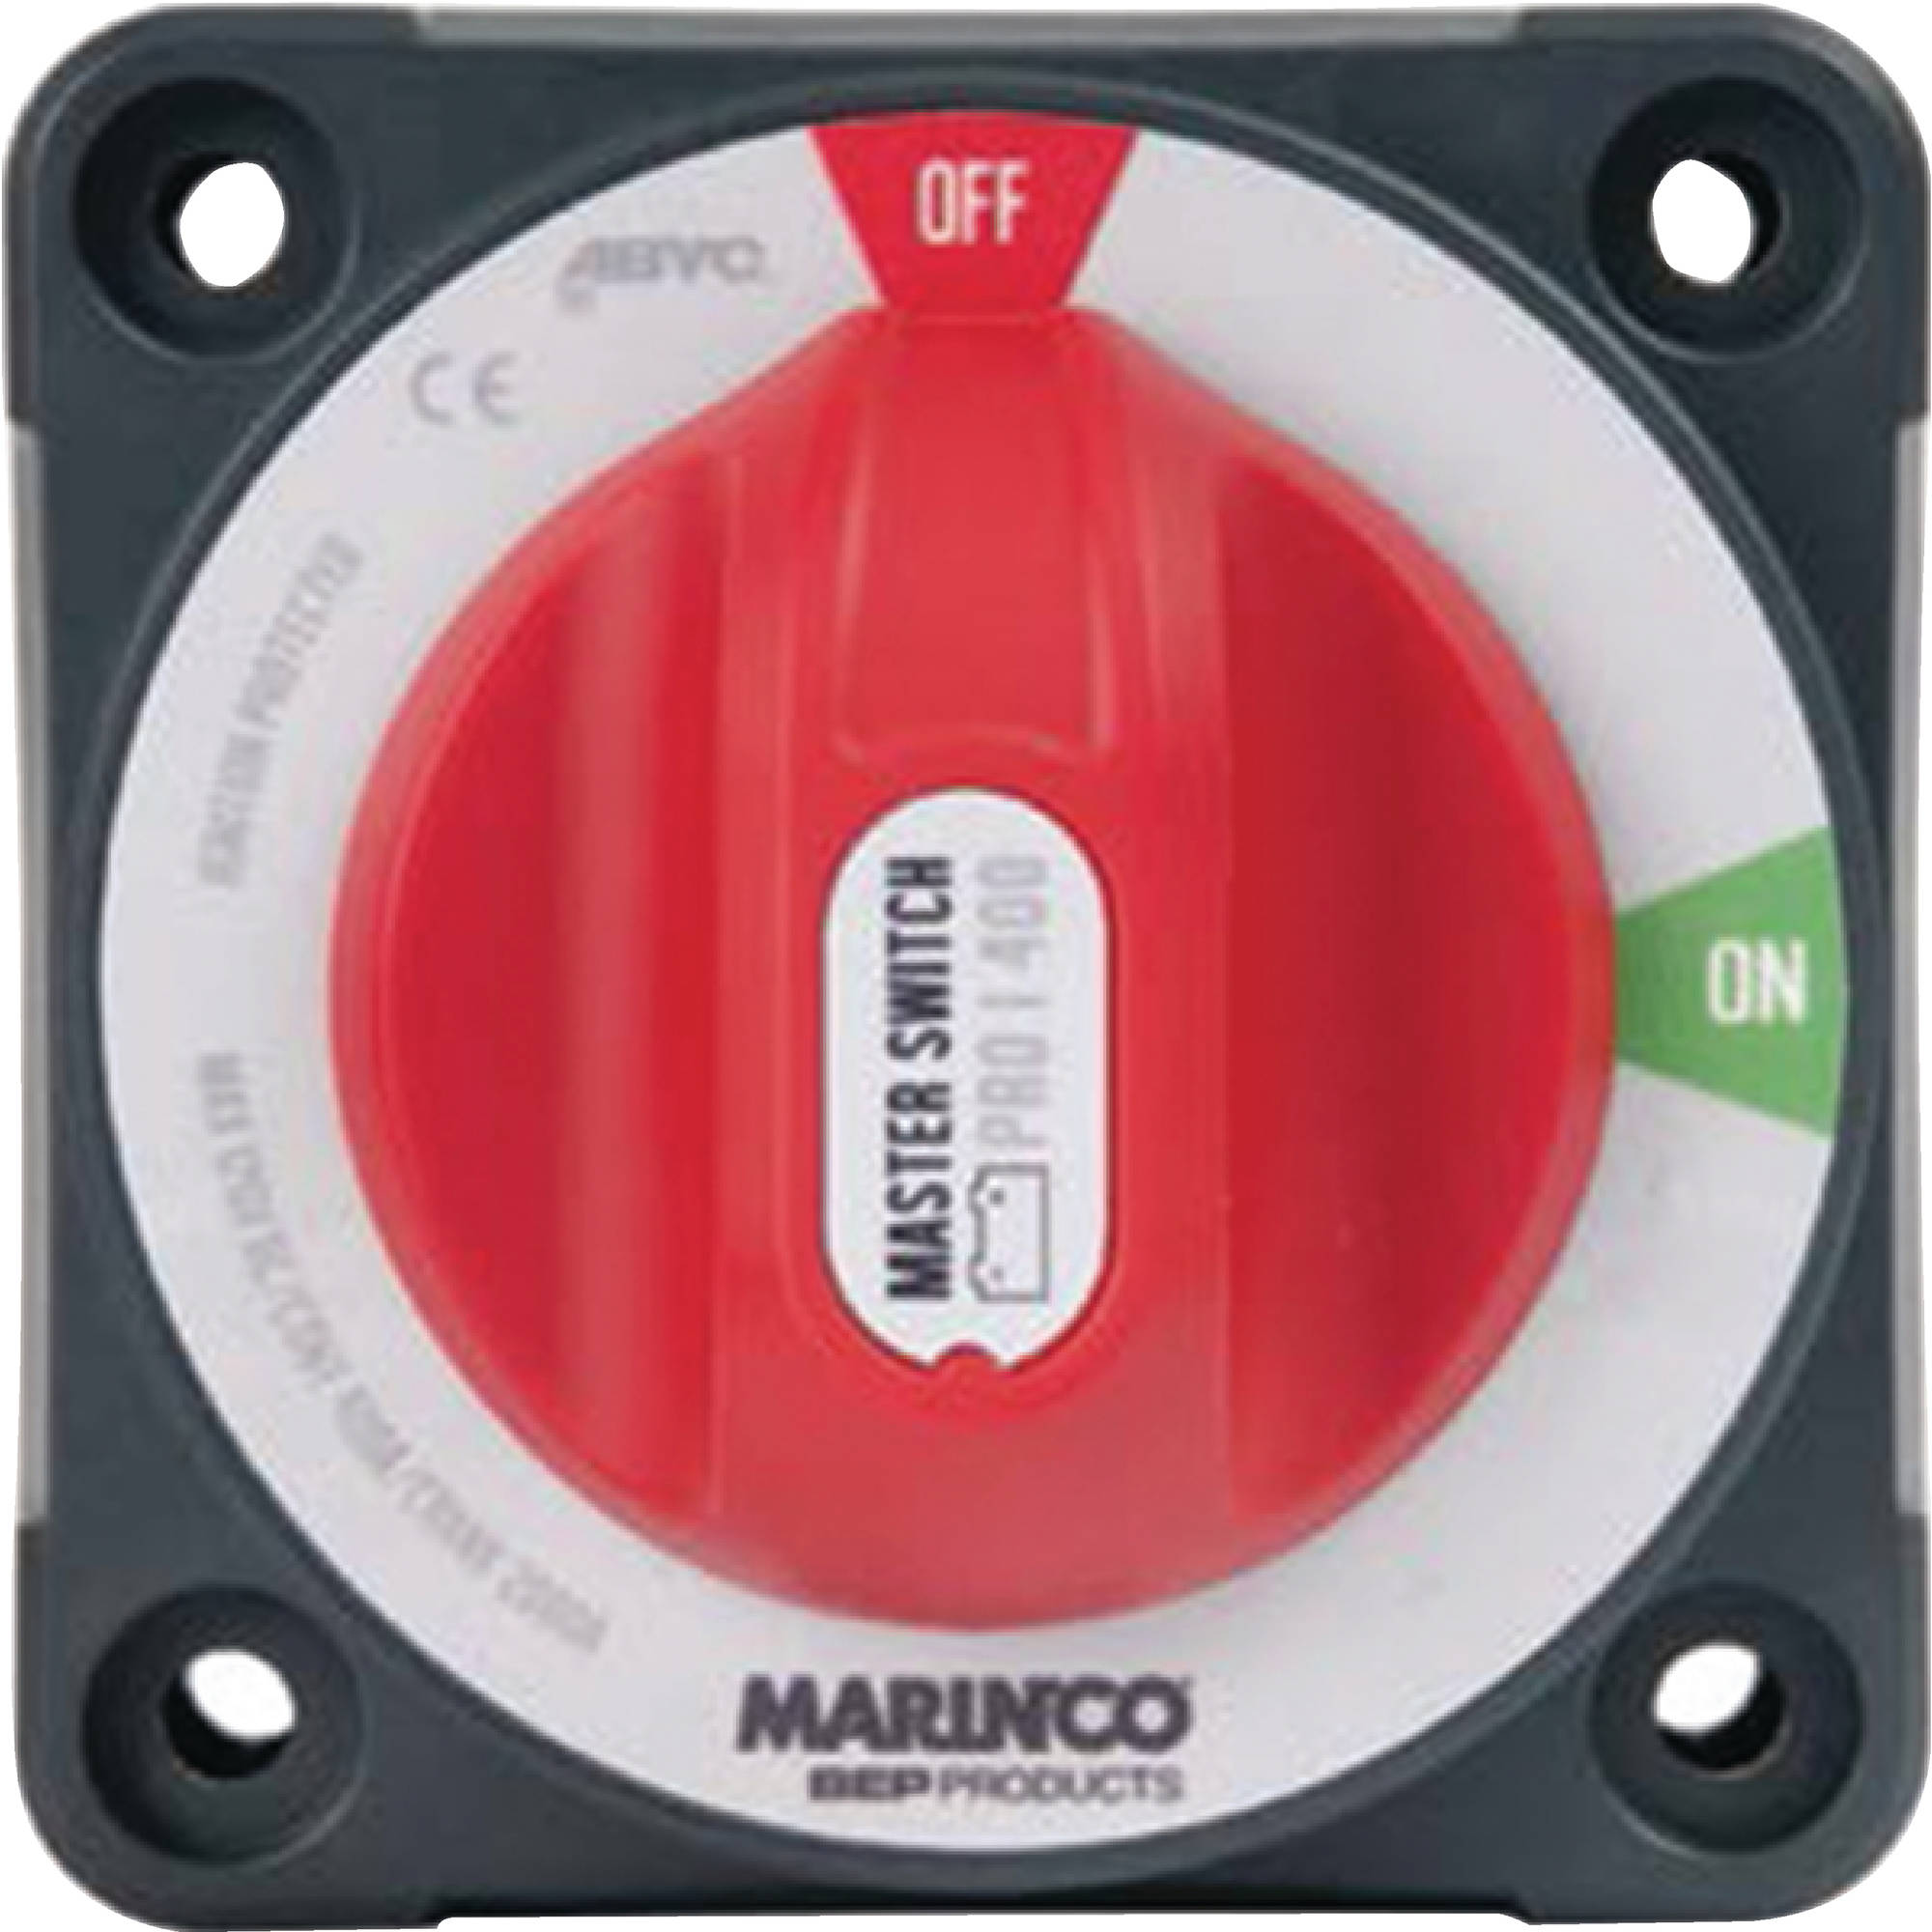 Marinco 770 Pro Installer On/Off Medium Duty Battery Switch